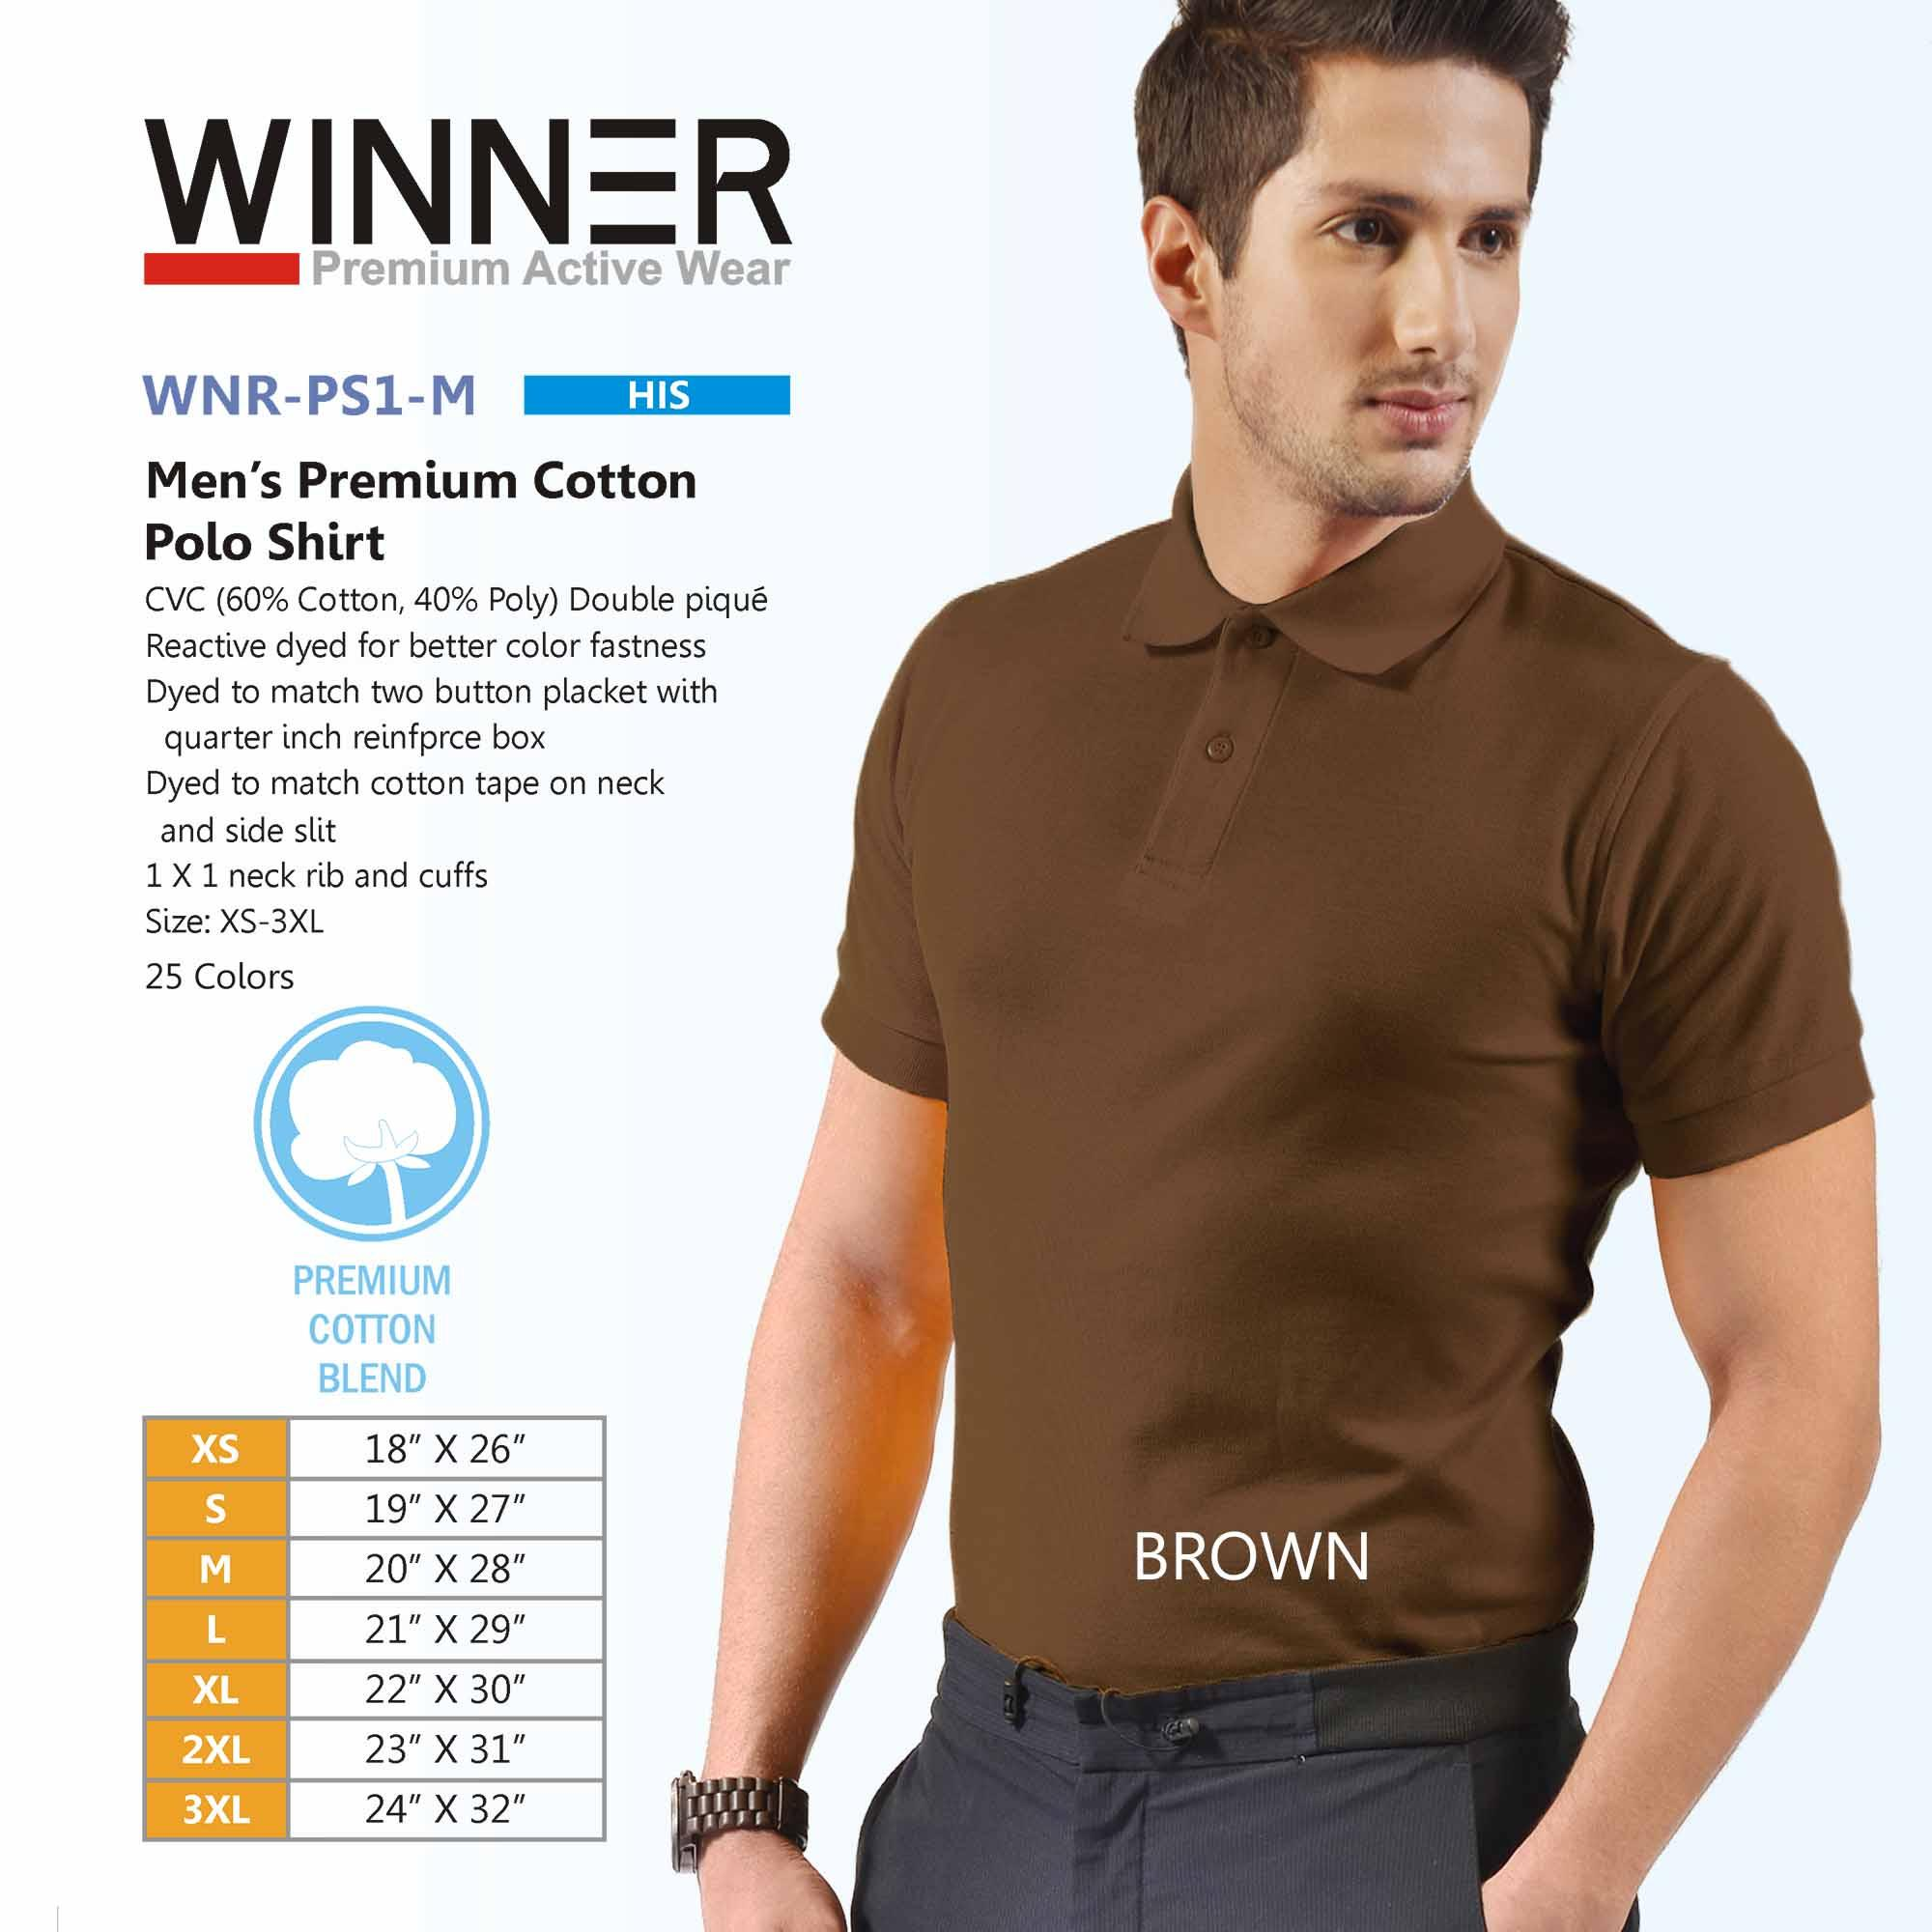 d8a55c13c Polo for Men for sale - Mens Polo Online Deals & Prices in Philippines |  Lazada.com.ph